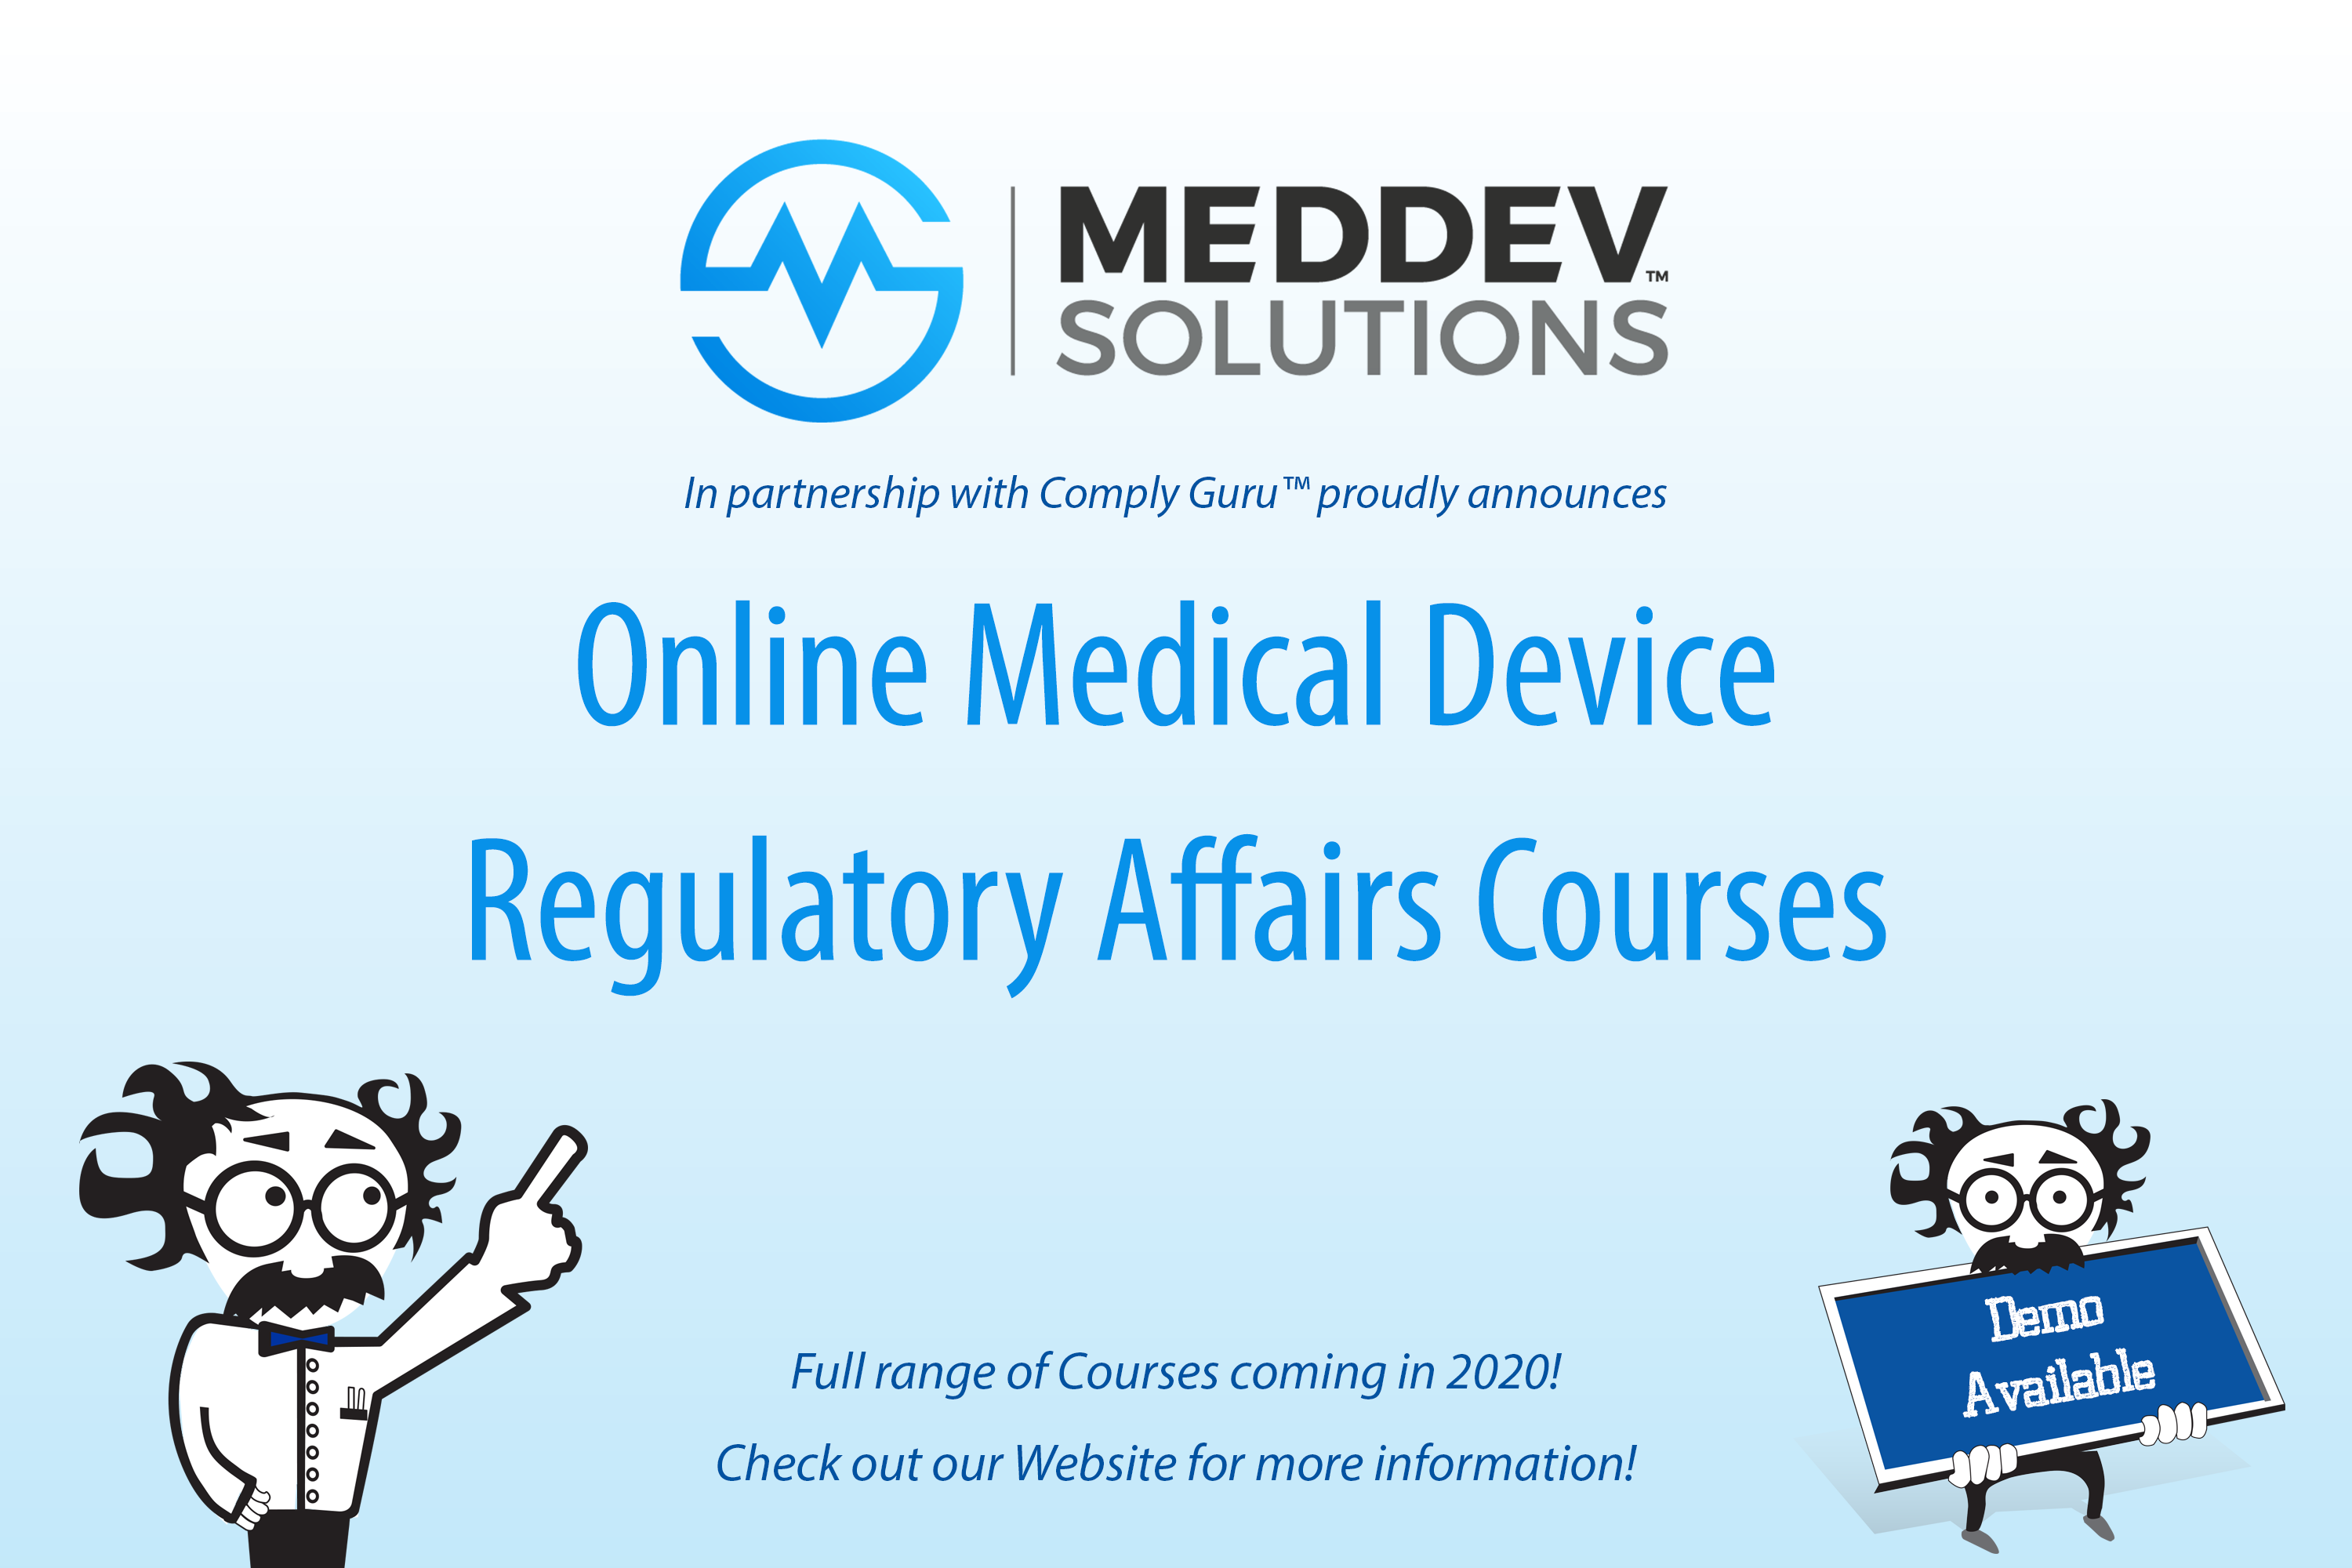 Online Medical Device Regulatory Affairs Courses with Meddev Solutions